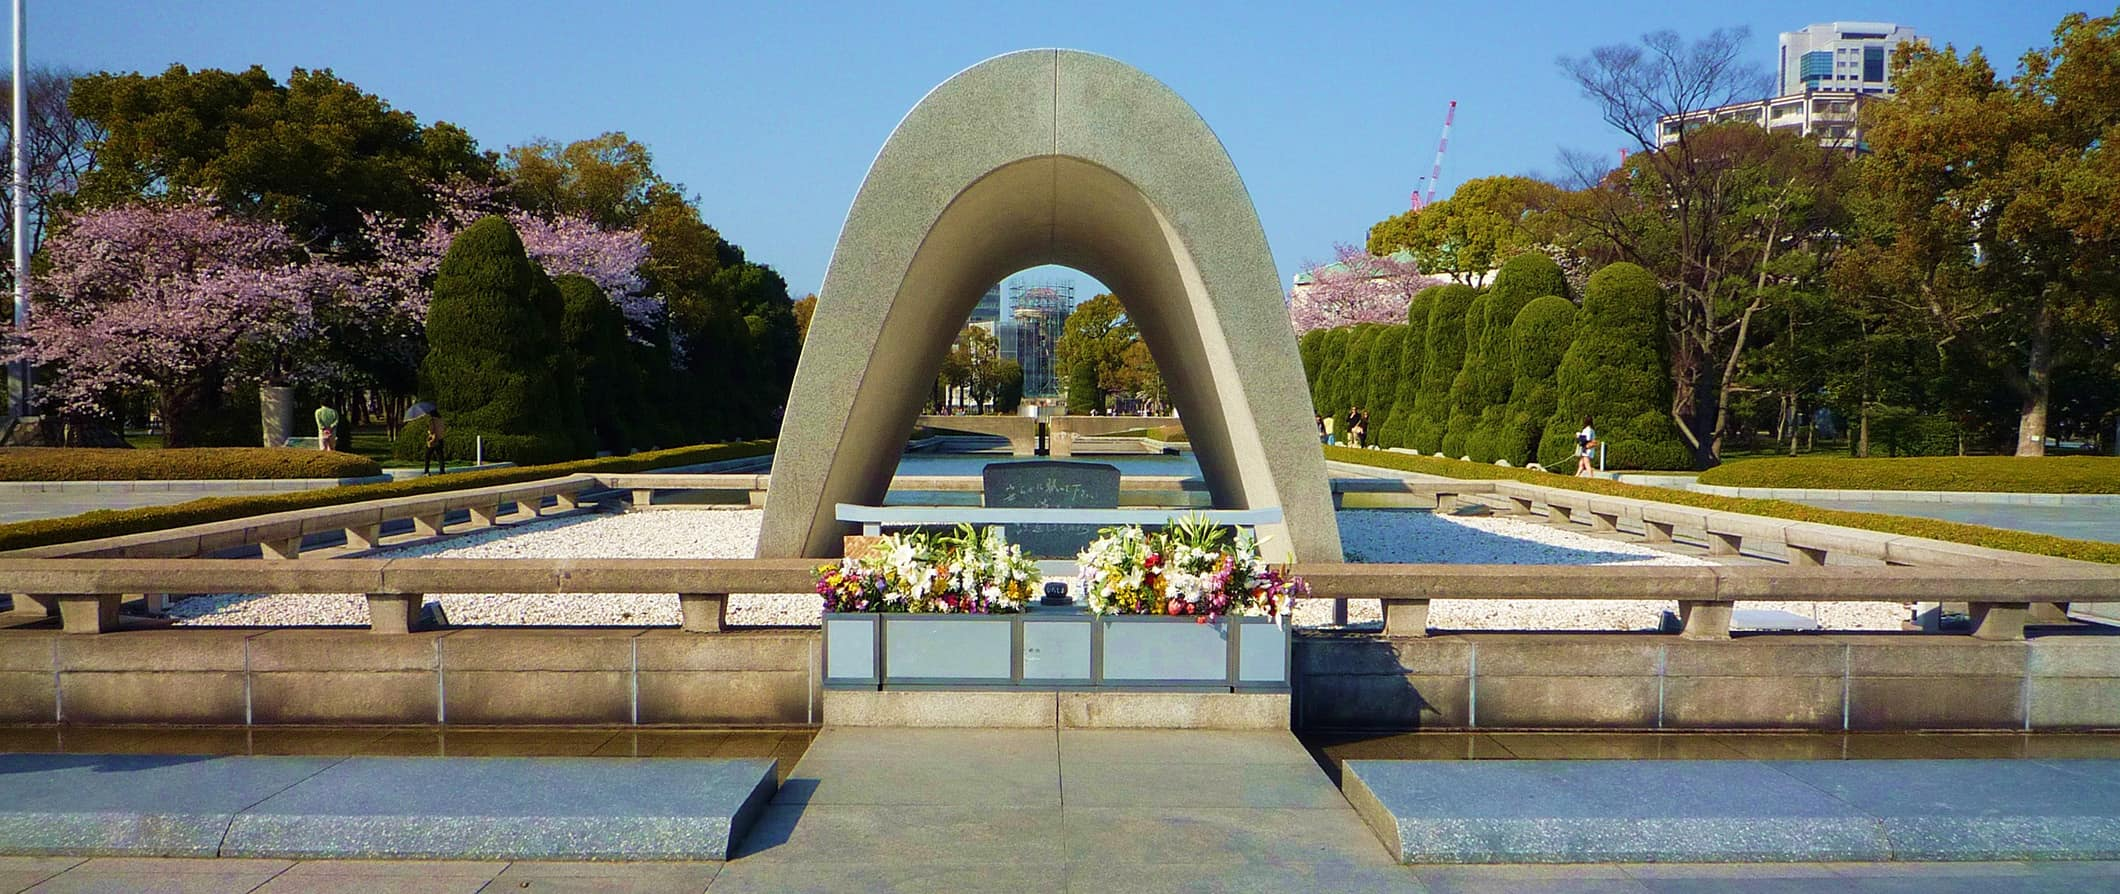 the memorial and peace garden in Hiroshima, Japan